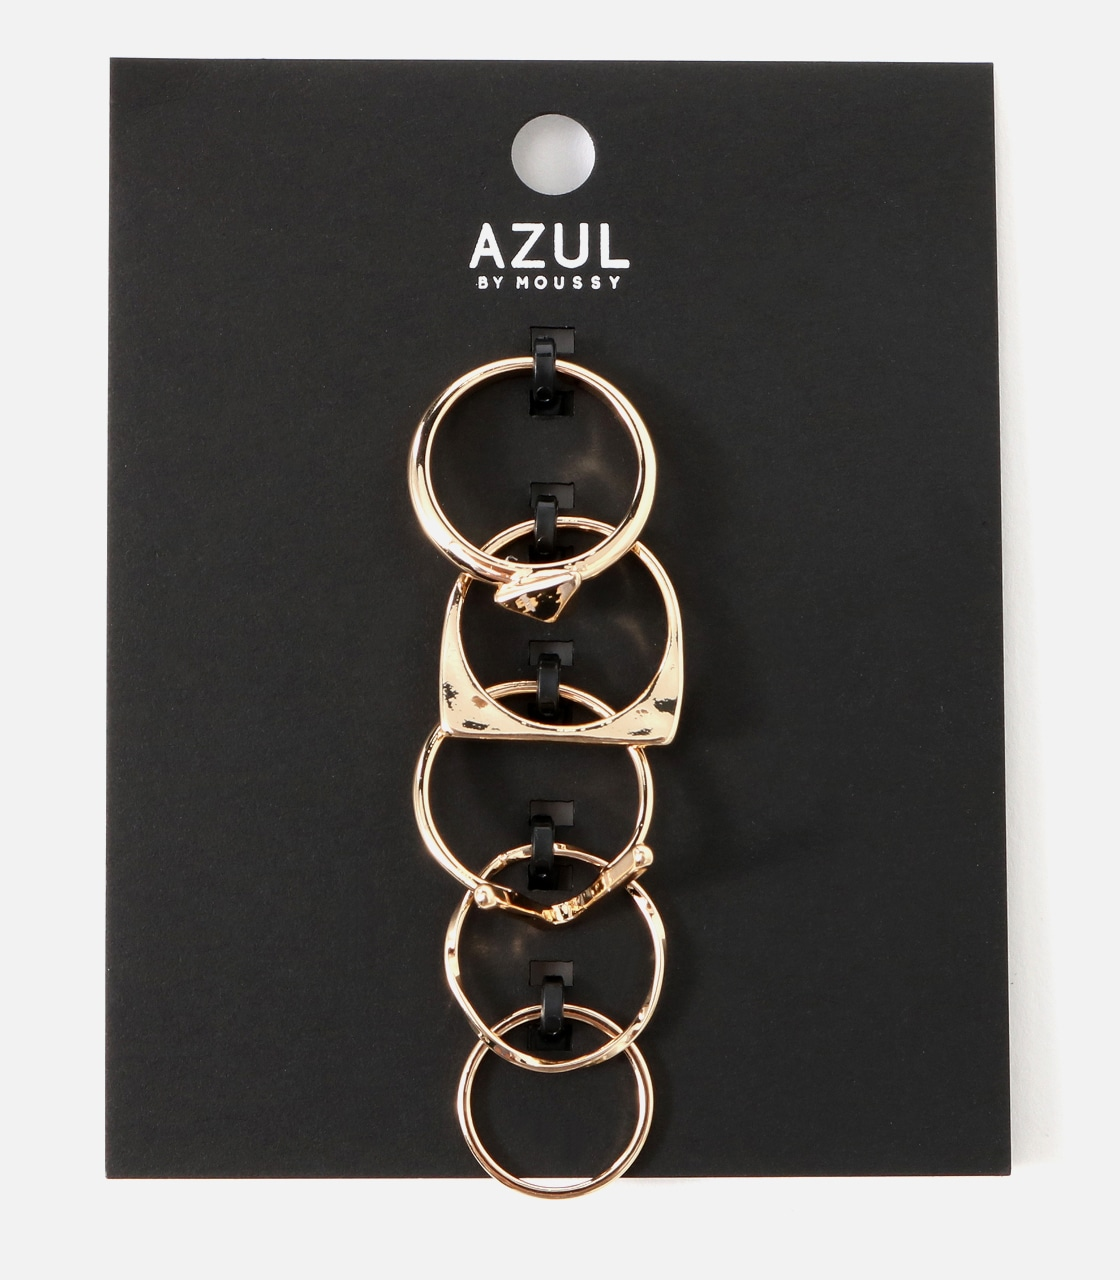 【AZUL BY MOUSSY】V字メタル5本SETリング 詳細画像 L/GLD 1